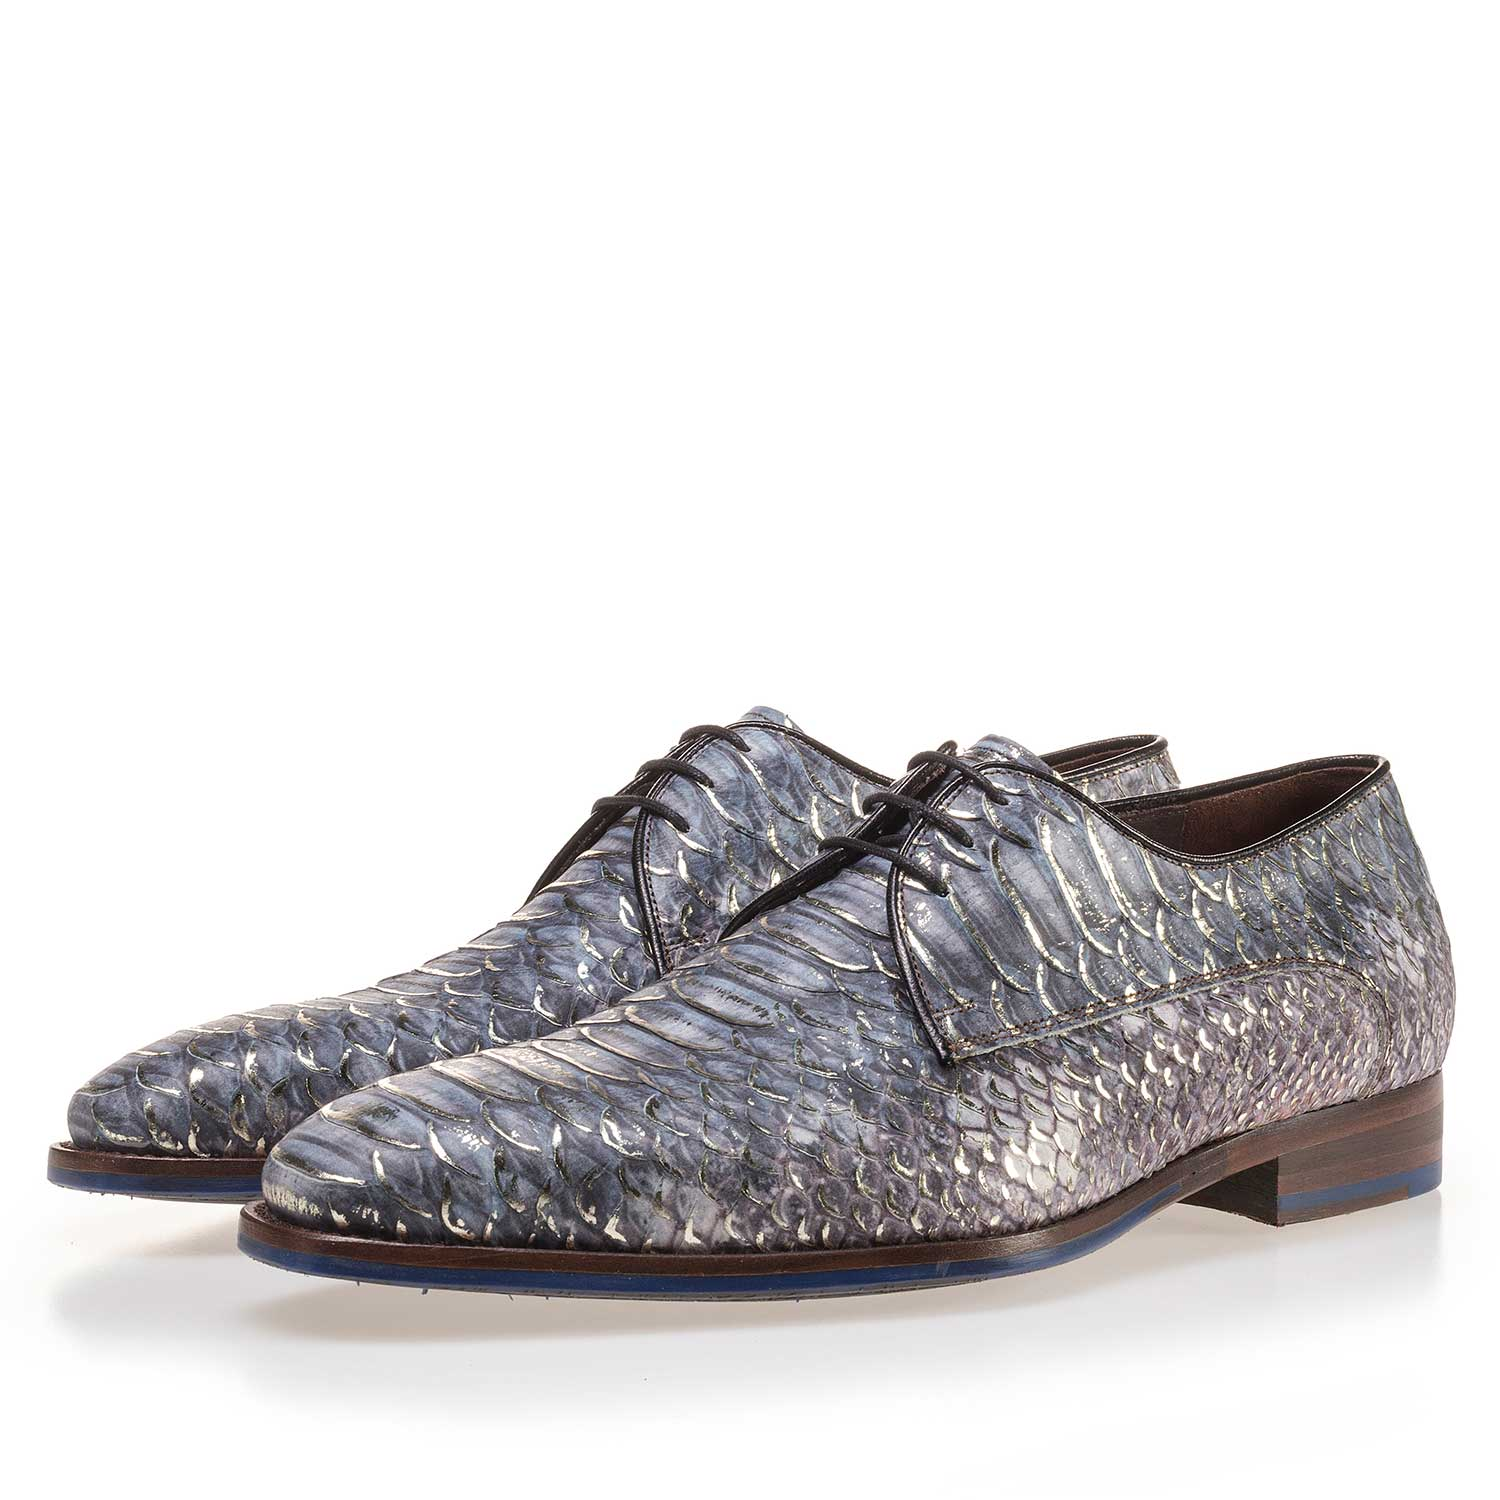 14170/00 - Premium blue leather lace shoe with a snake print